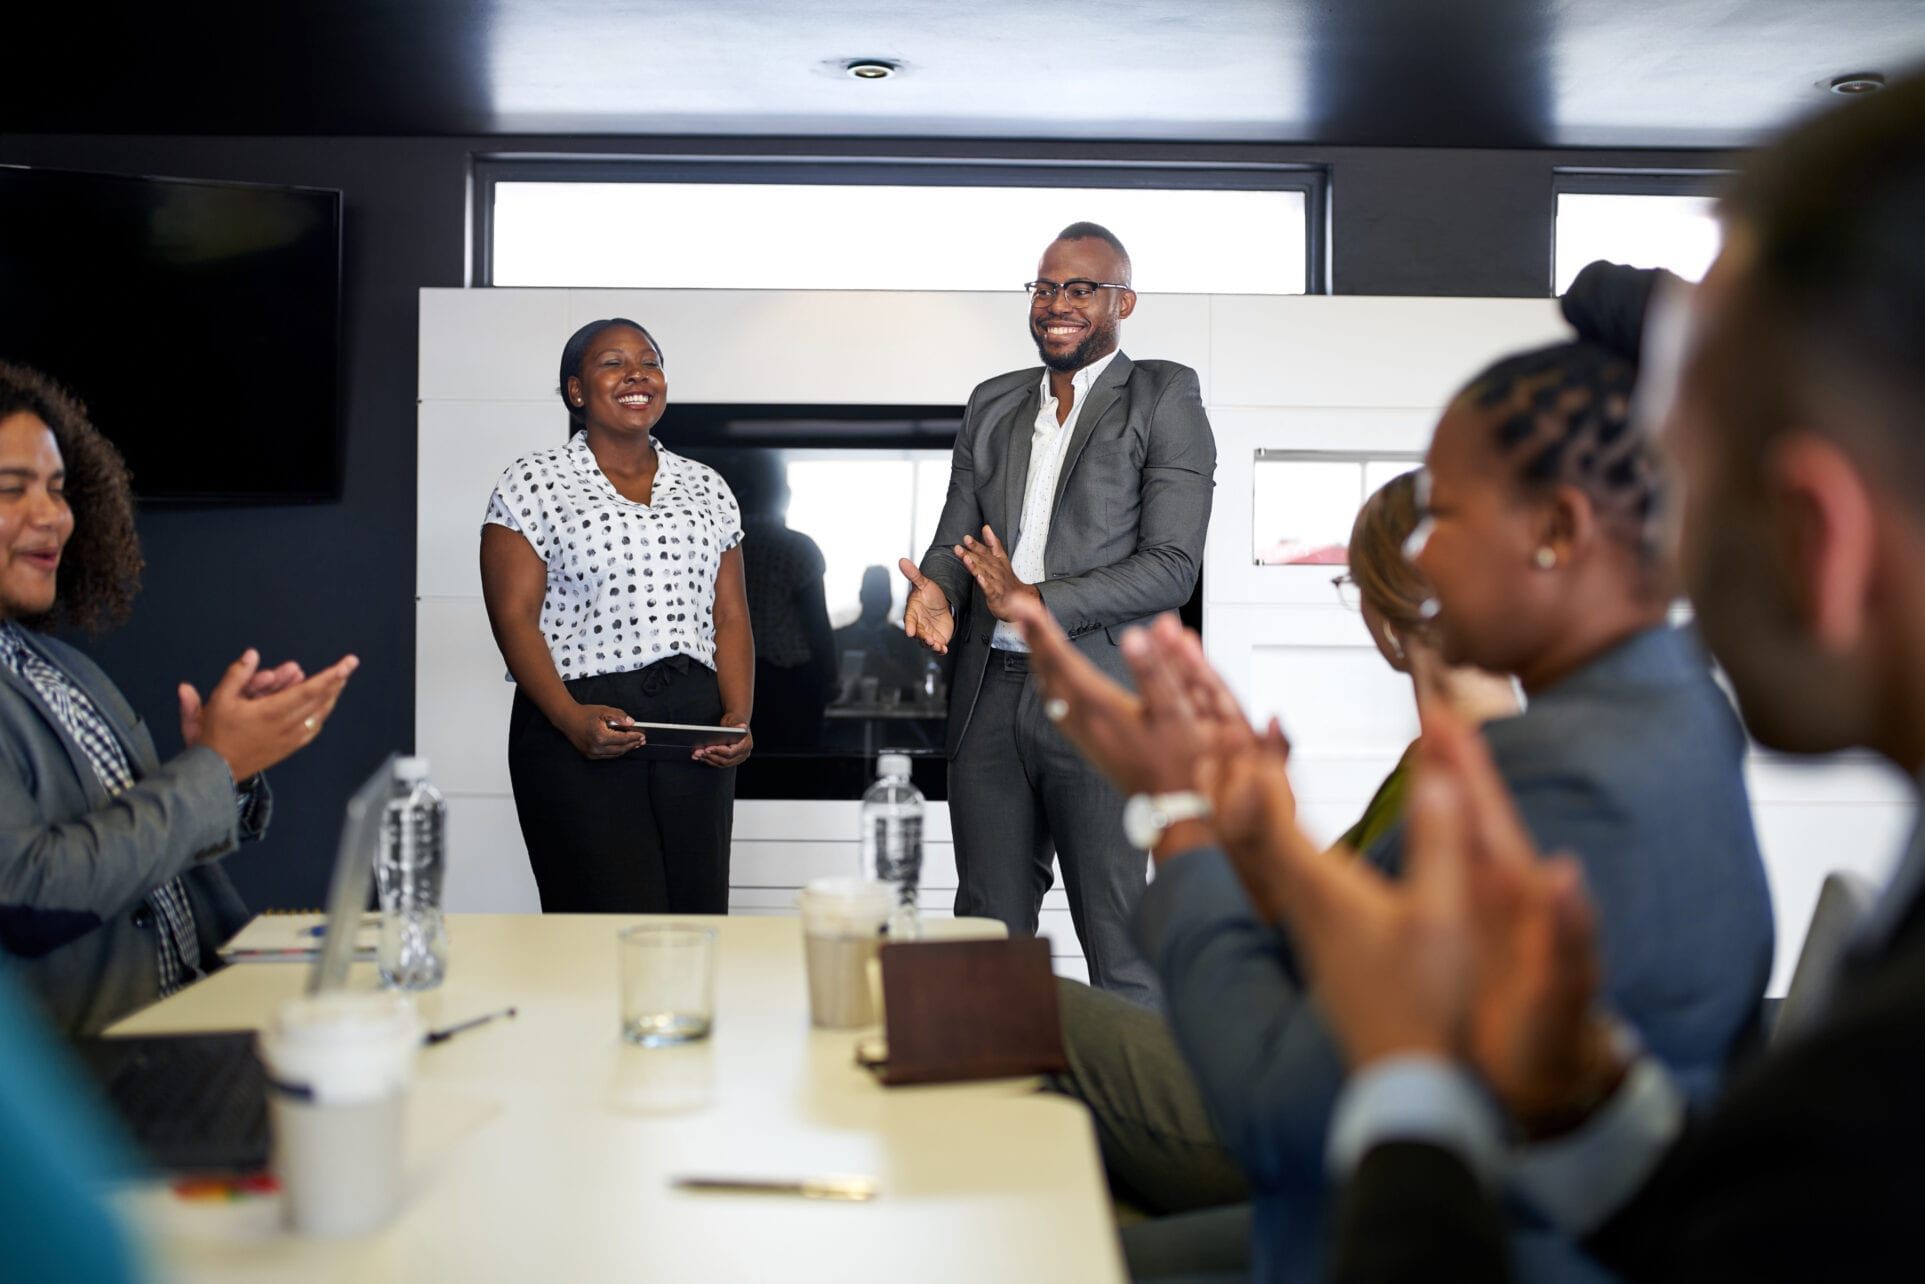 Attractive black businessman being encouraged by diverse multi-ethnic group of coworkers during presentation in office